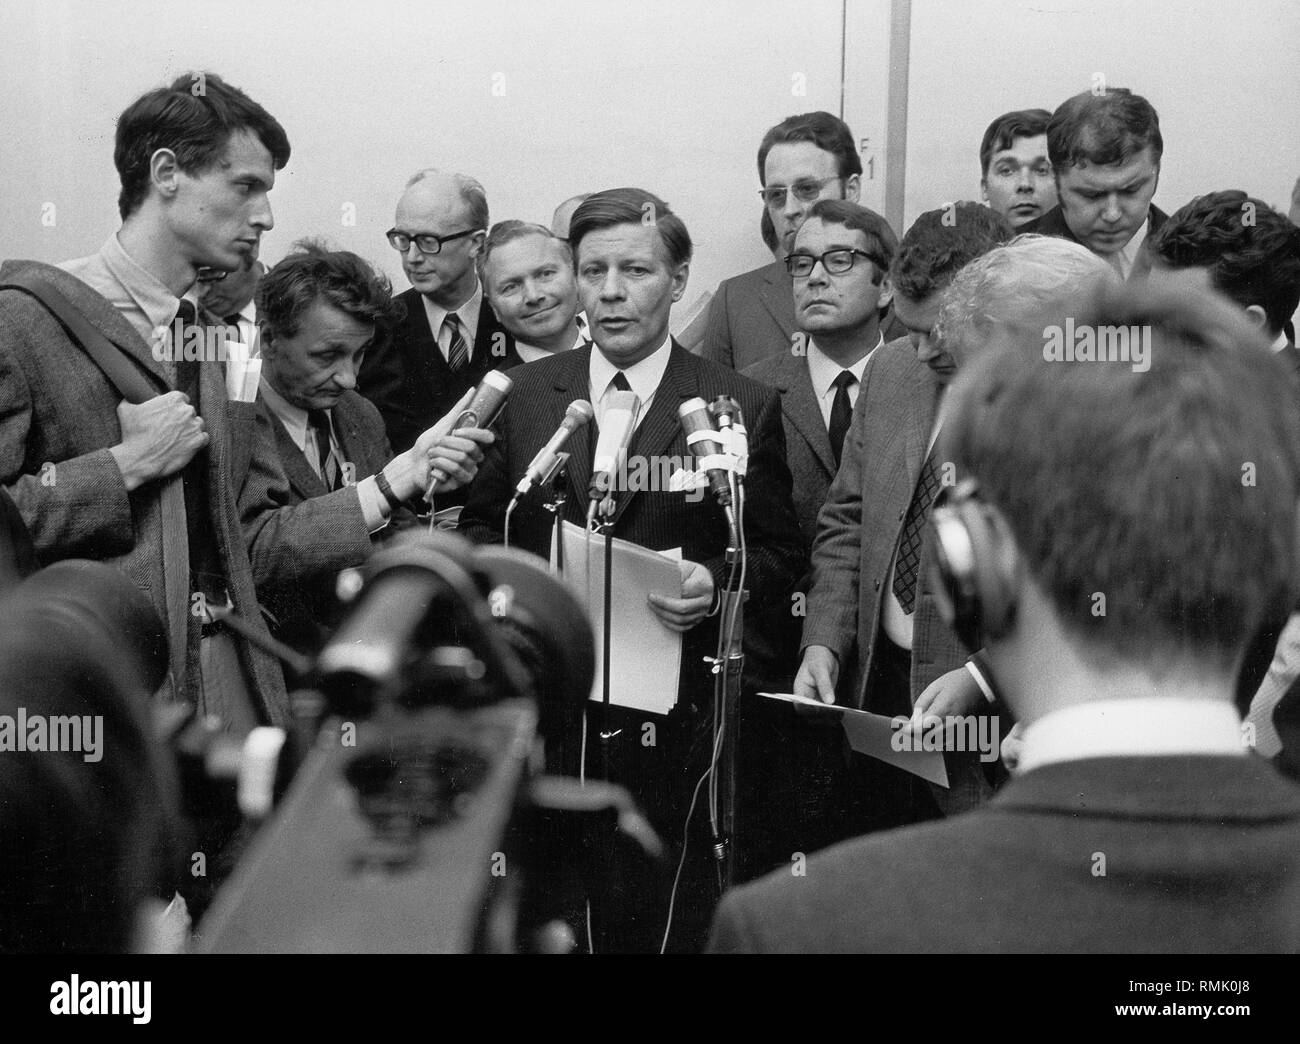 Chairman of the SPD-Bundestagfraktion (faction of a parliamentary party in the German Bundestag), Helmut Schmidt (center), gives a statement on the new cabinet list of the SPD to the press after the formation of government by Chancellor Willy Brandt. - Stock Image